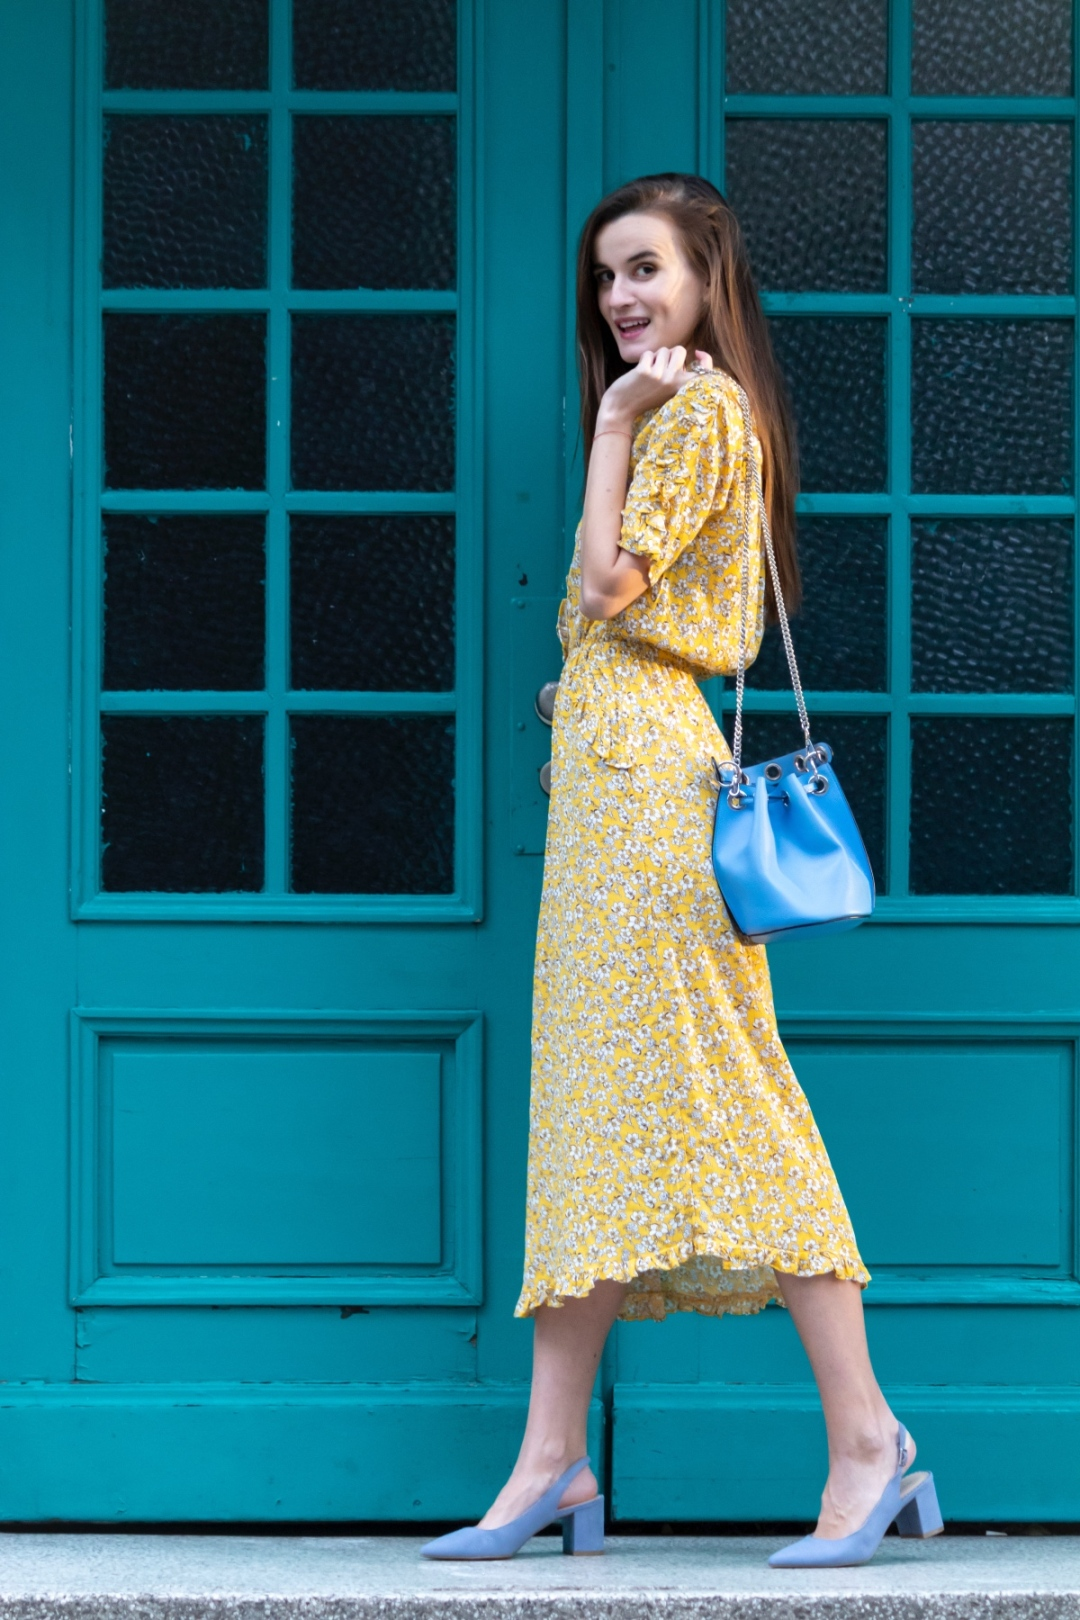 Shoes trends for summer 2019 Deichmann Bulgaria - blue sling pumps